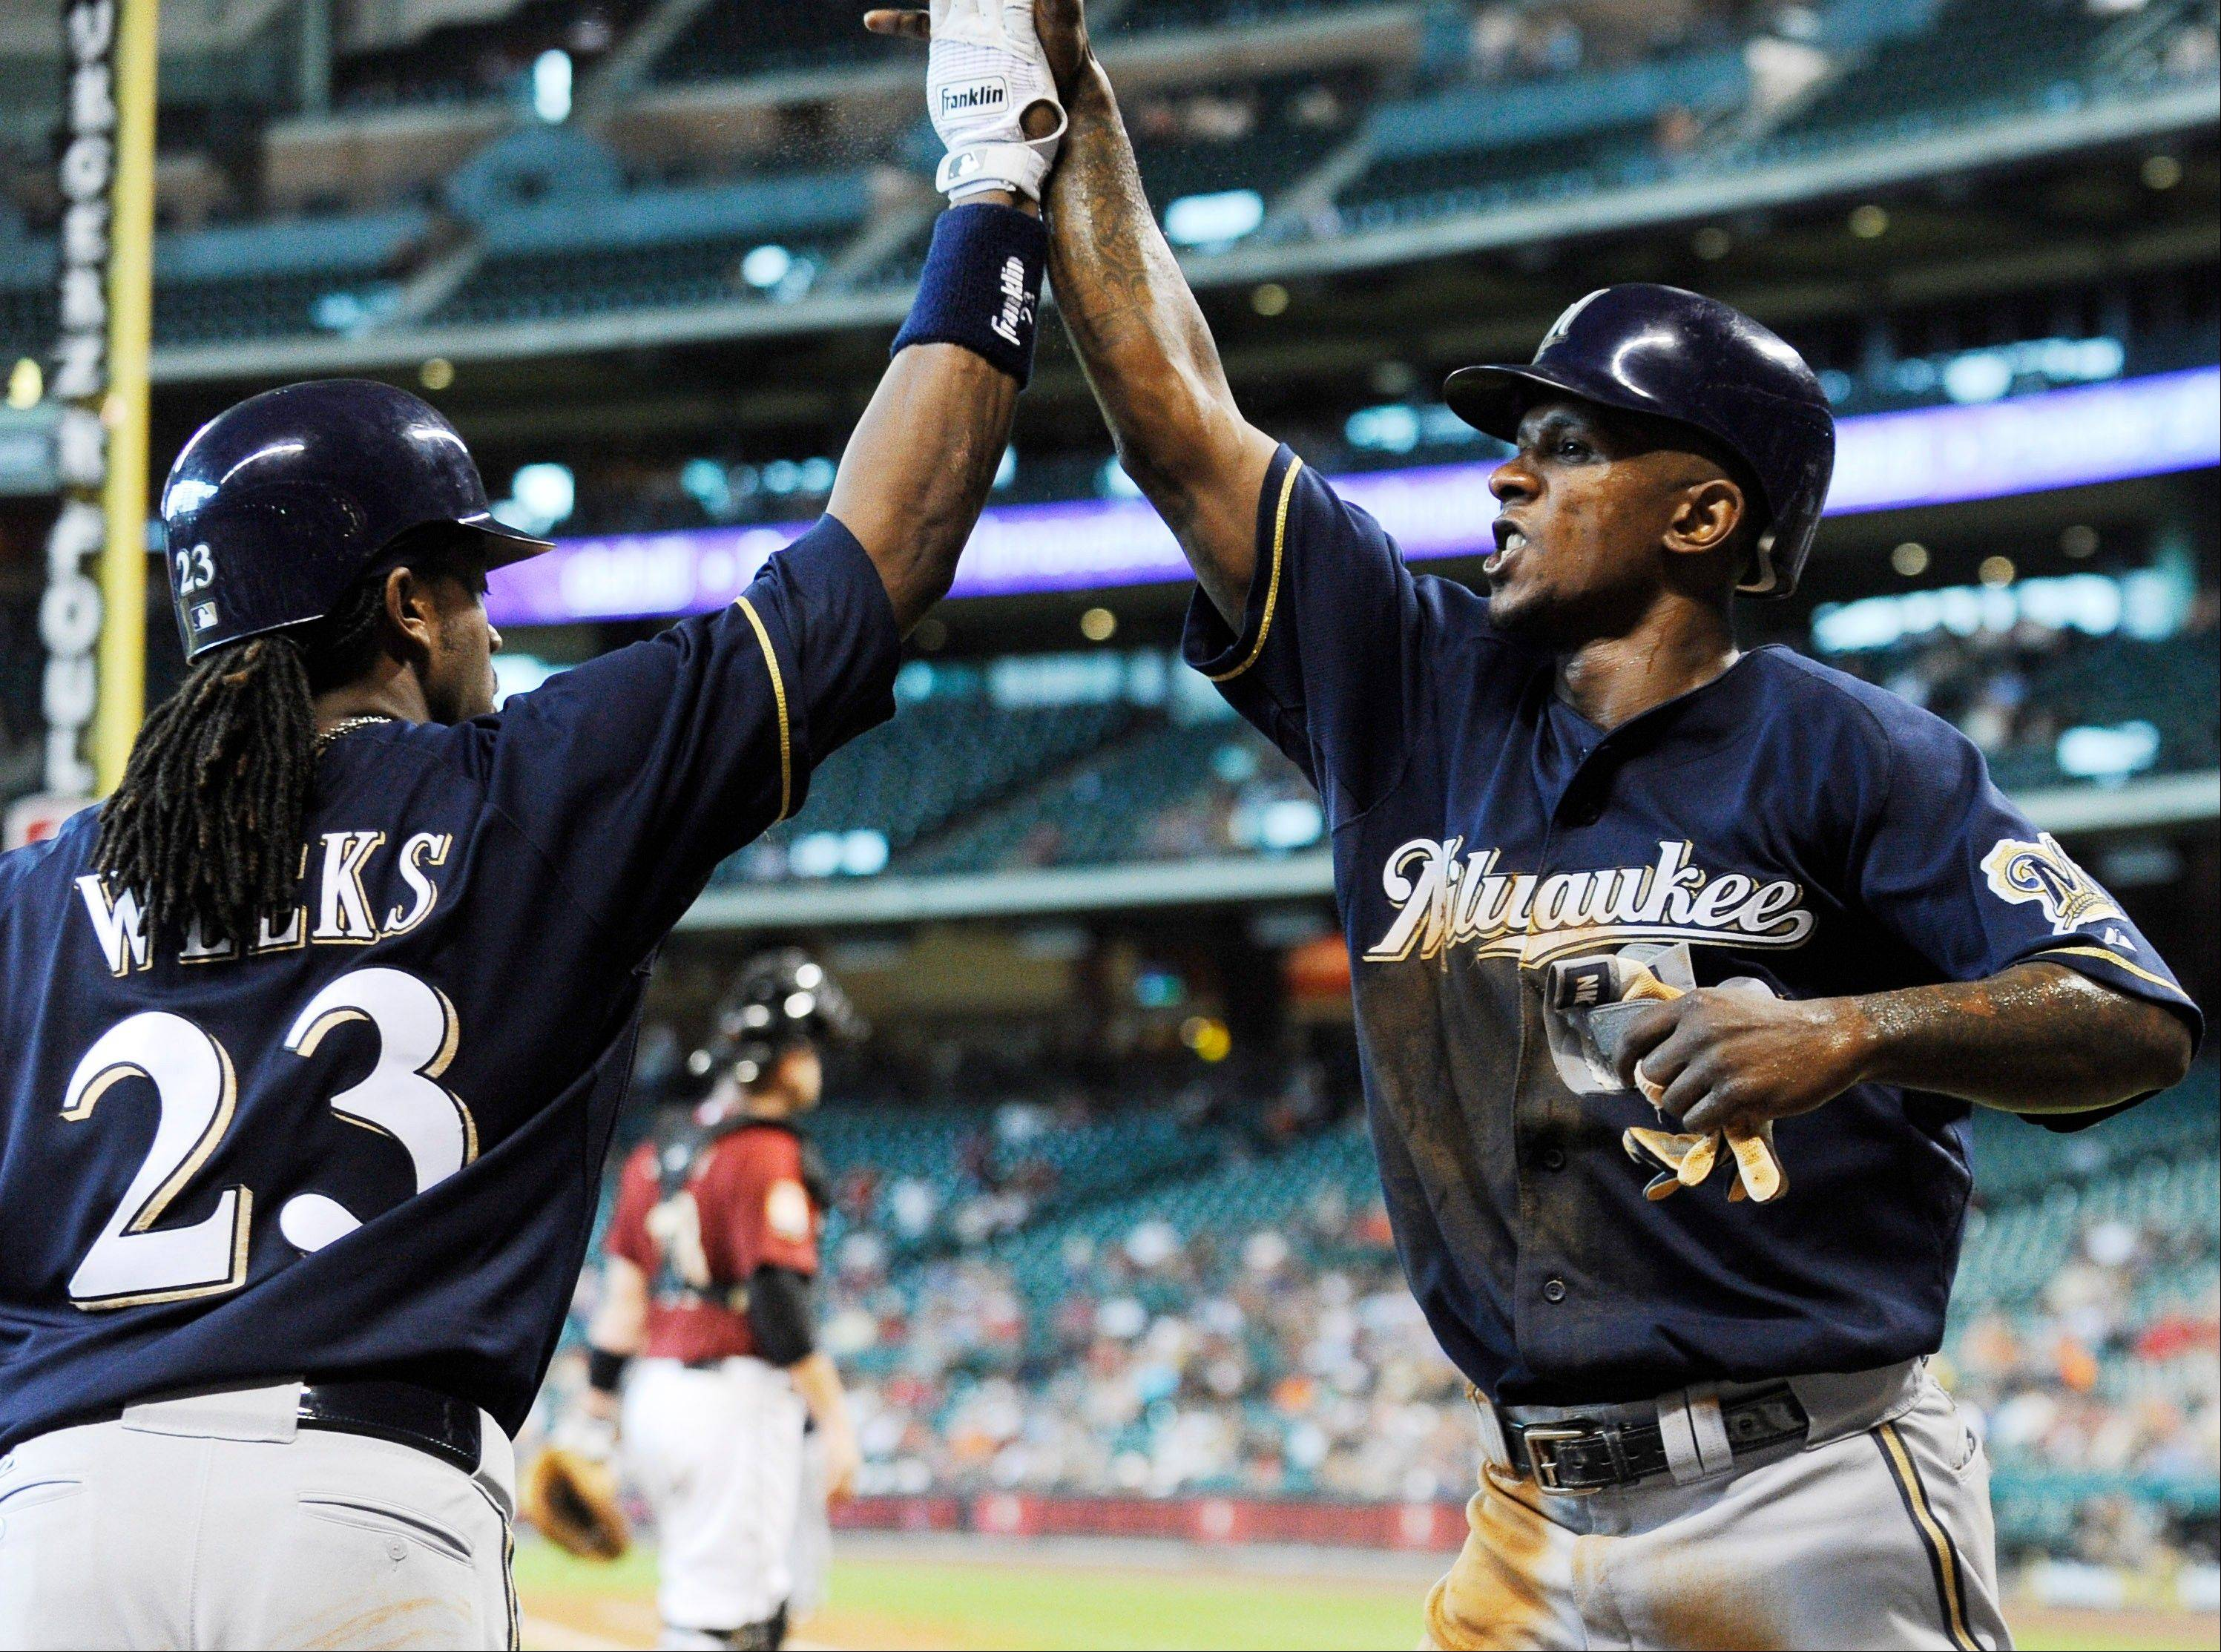 Milwaukee's Nyjer Morgan, right, is greeted by Rickie Weeks after scoring the go-ahead run on a bases-loaded single by Corey Hart in the 10th inning Sunday in Houston.